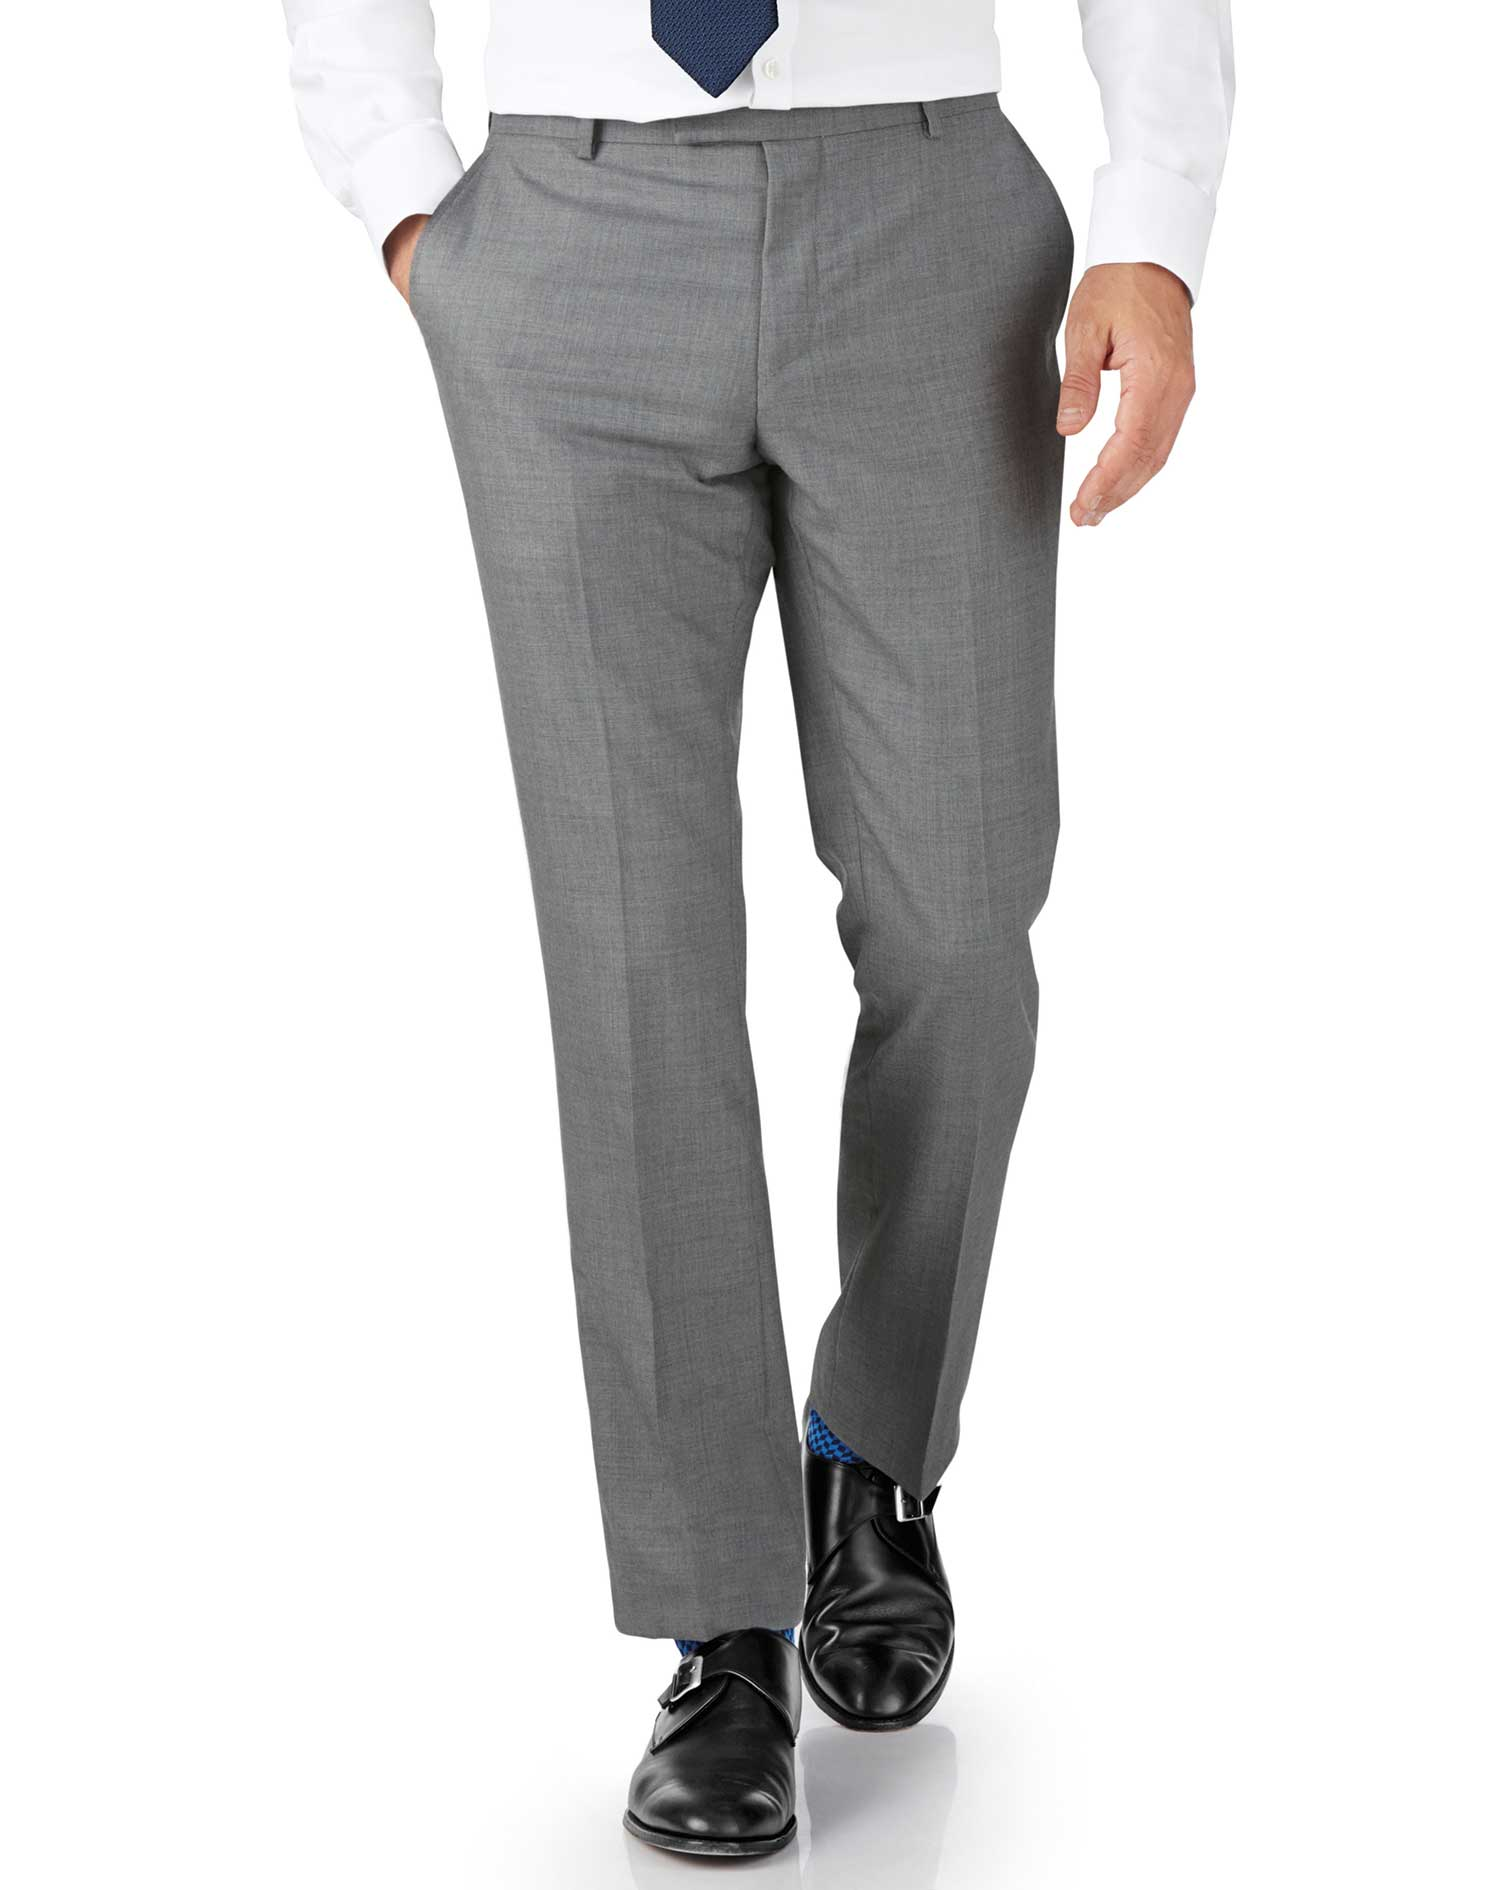 Silver Slim Fit British Panama Luxury Suit Trousers Size W40 L38 by Charles Tyrwhitt